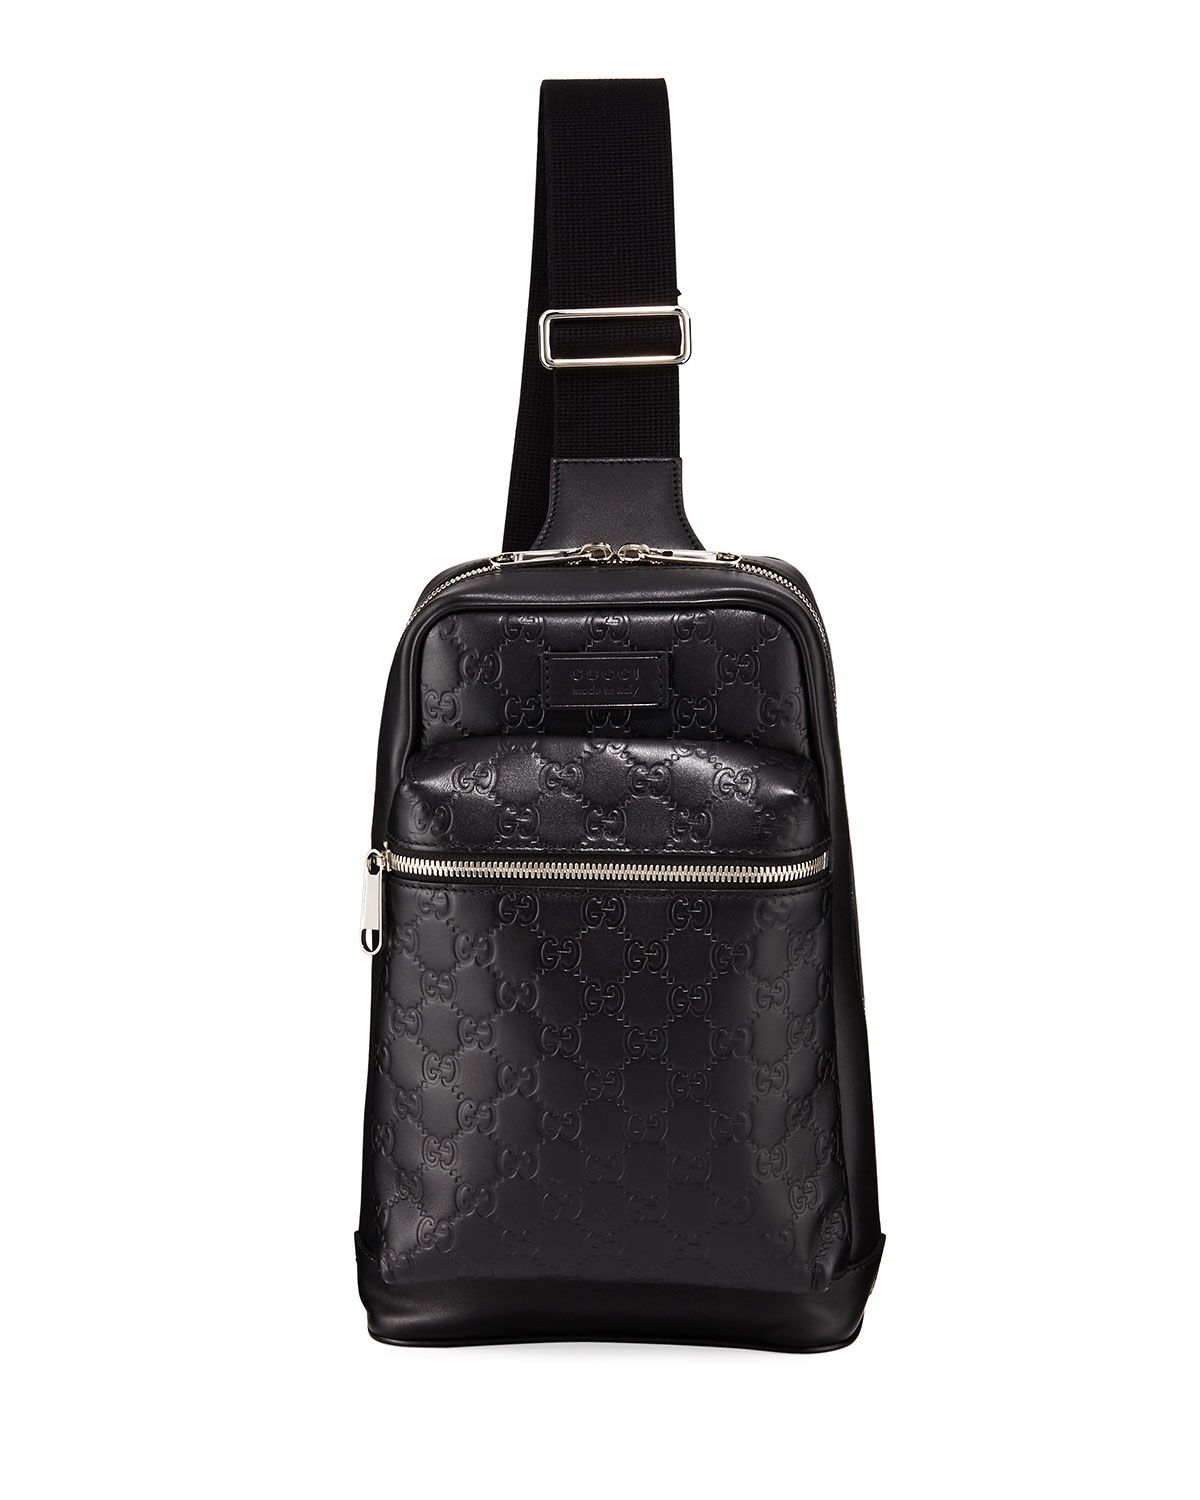 2802c1b526b7 GUCCI MEN S GG LEATHER CROSSBODY BACKPACK.  gucci  bags  leather  rayon   backpacks